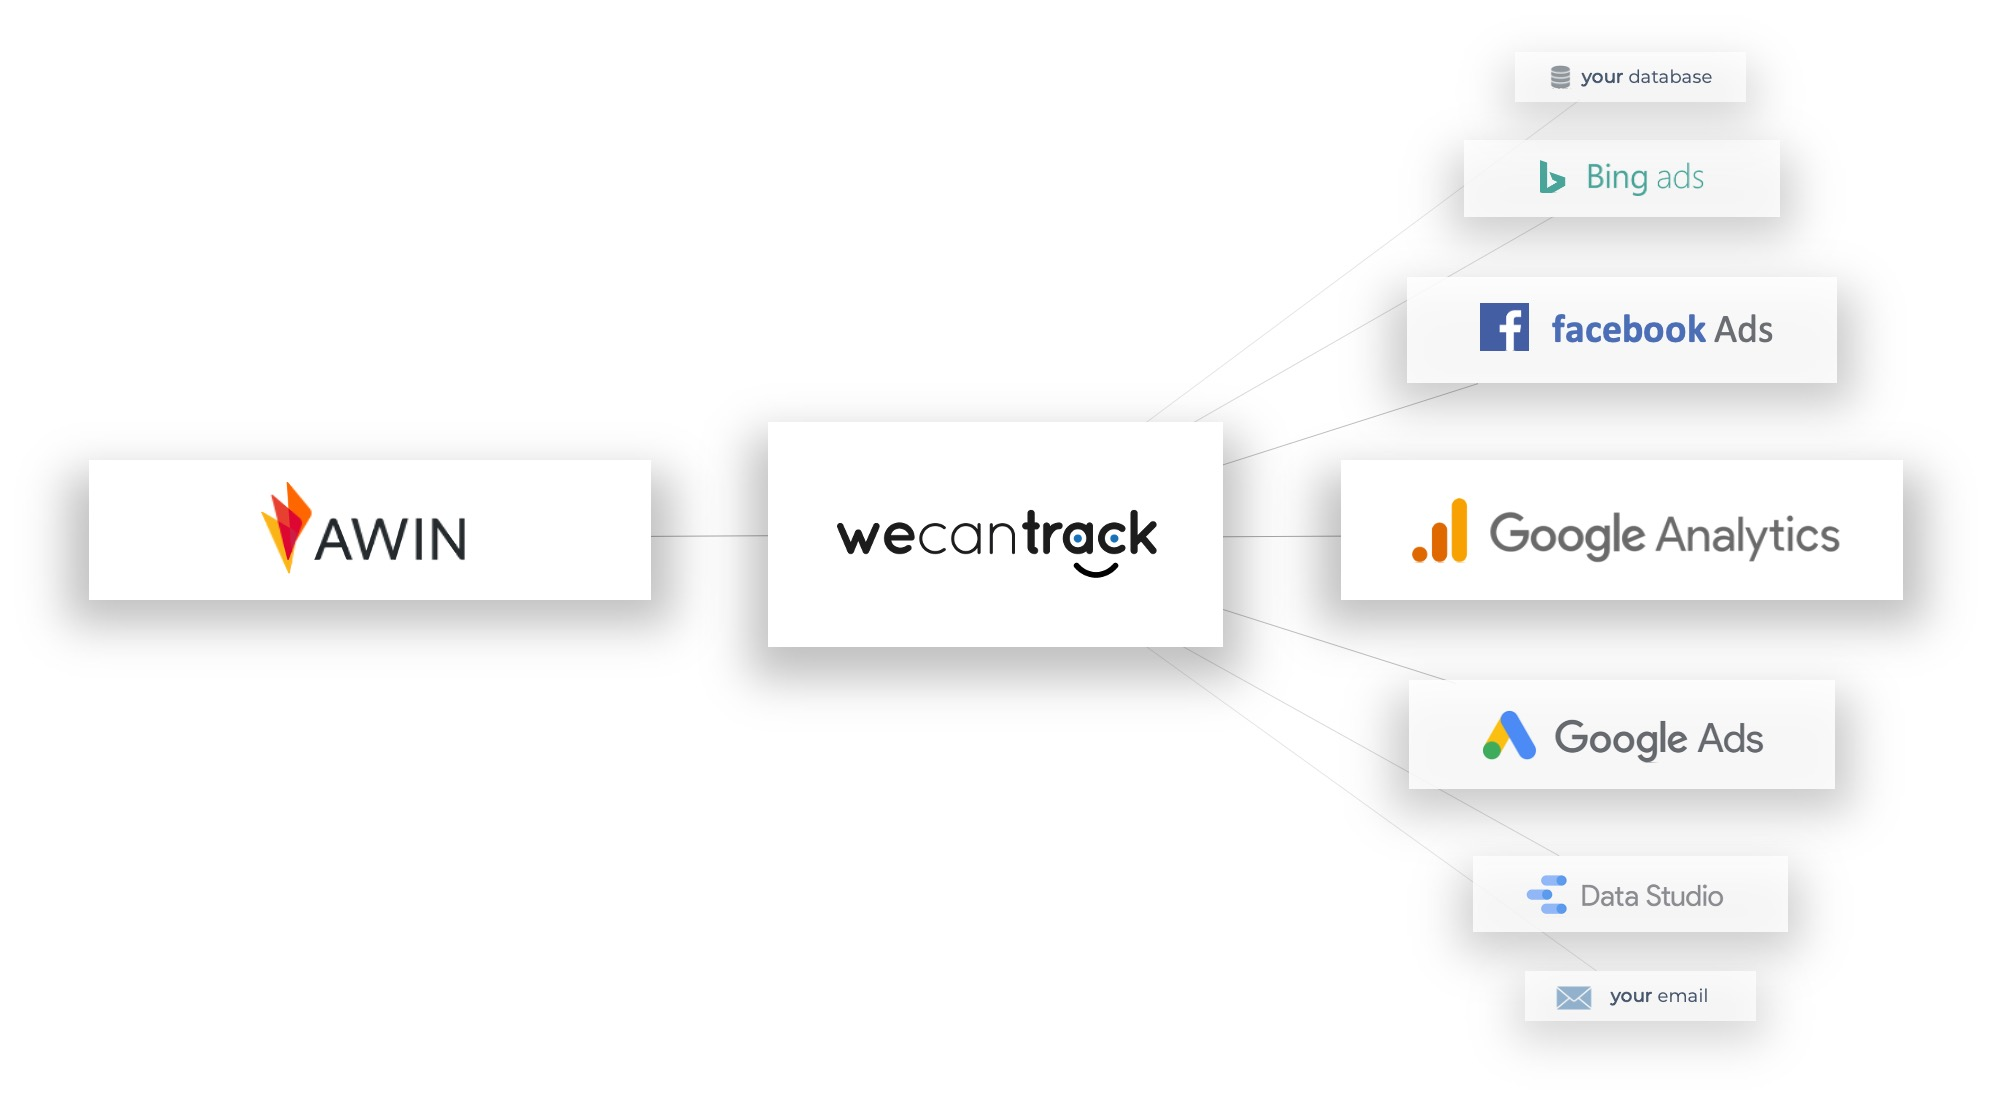 Integrate your AWIN conversion data in Google Analytics, Google Ads, Facebook and more